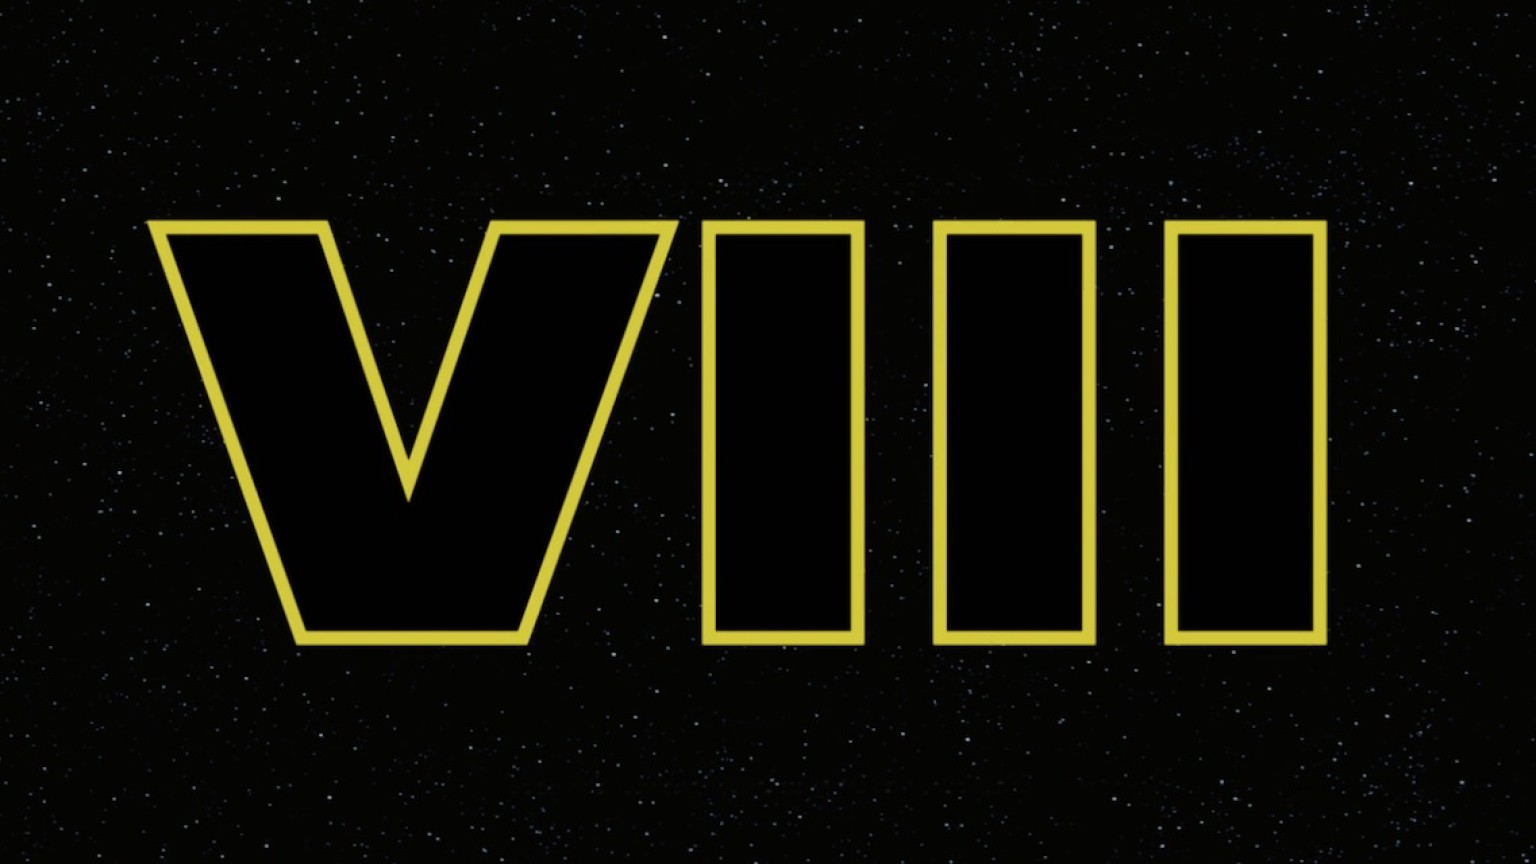 Star. Wars. Episode VIII. Trailer.